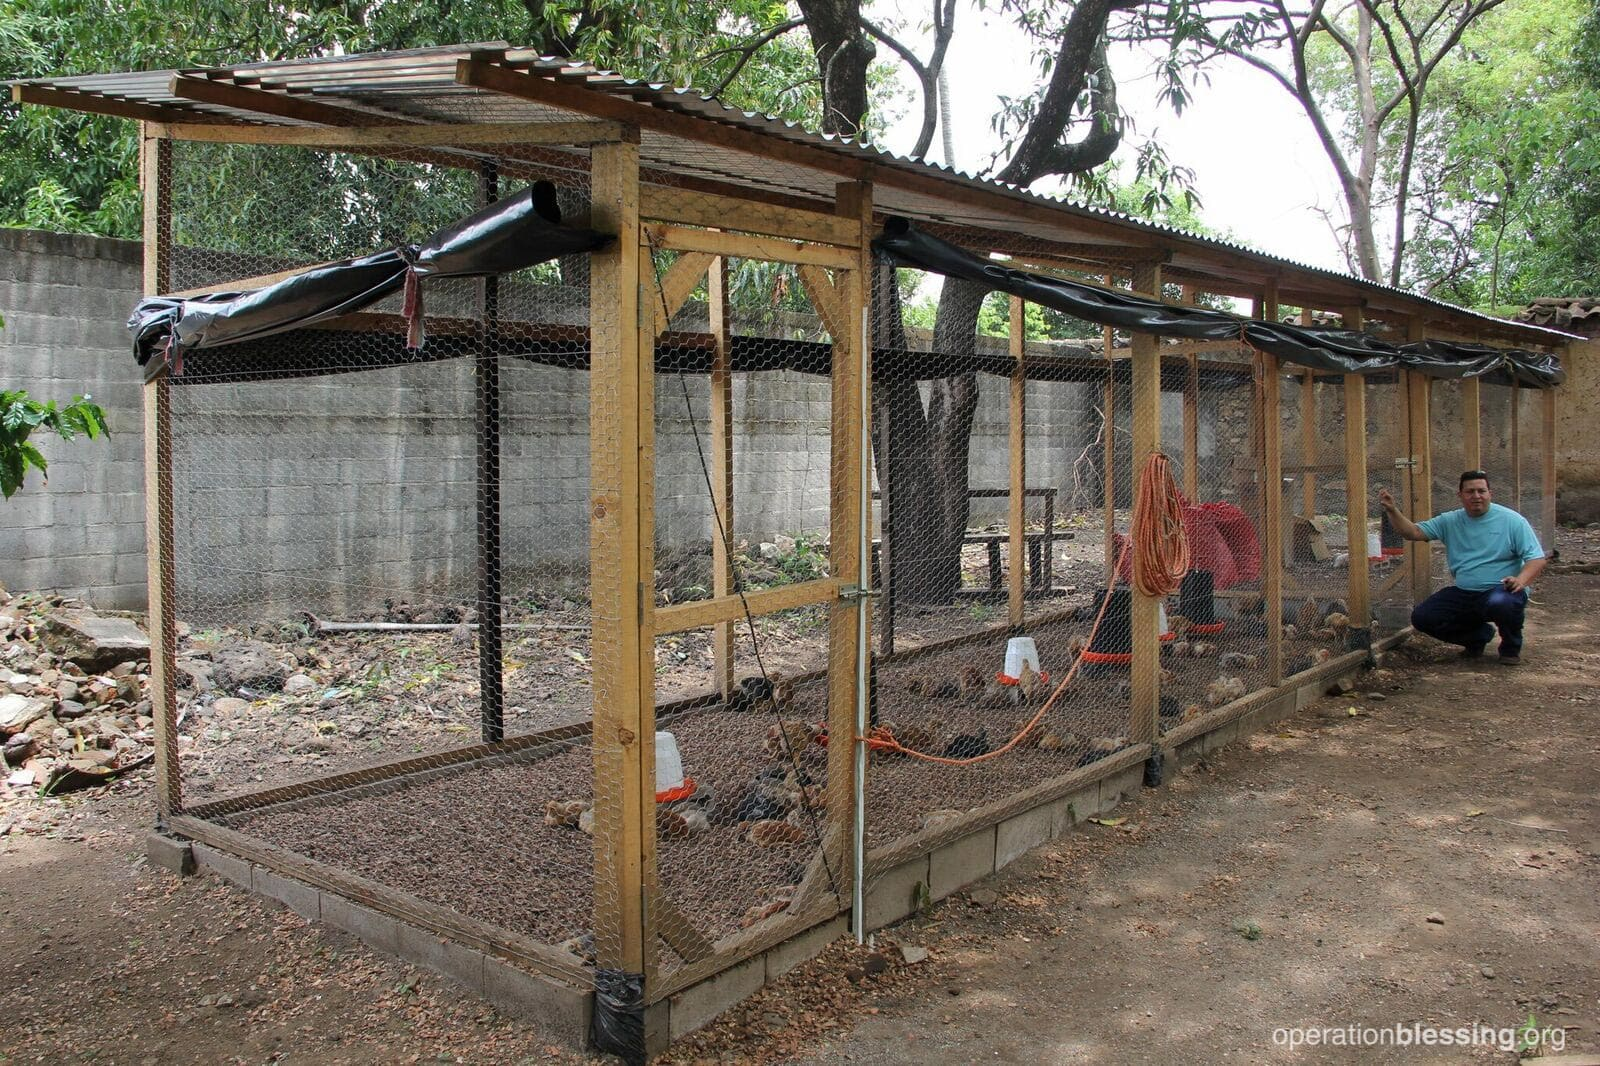 The new chicken coop that Operation Blessing built for Santos.